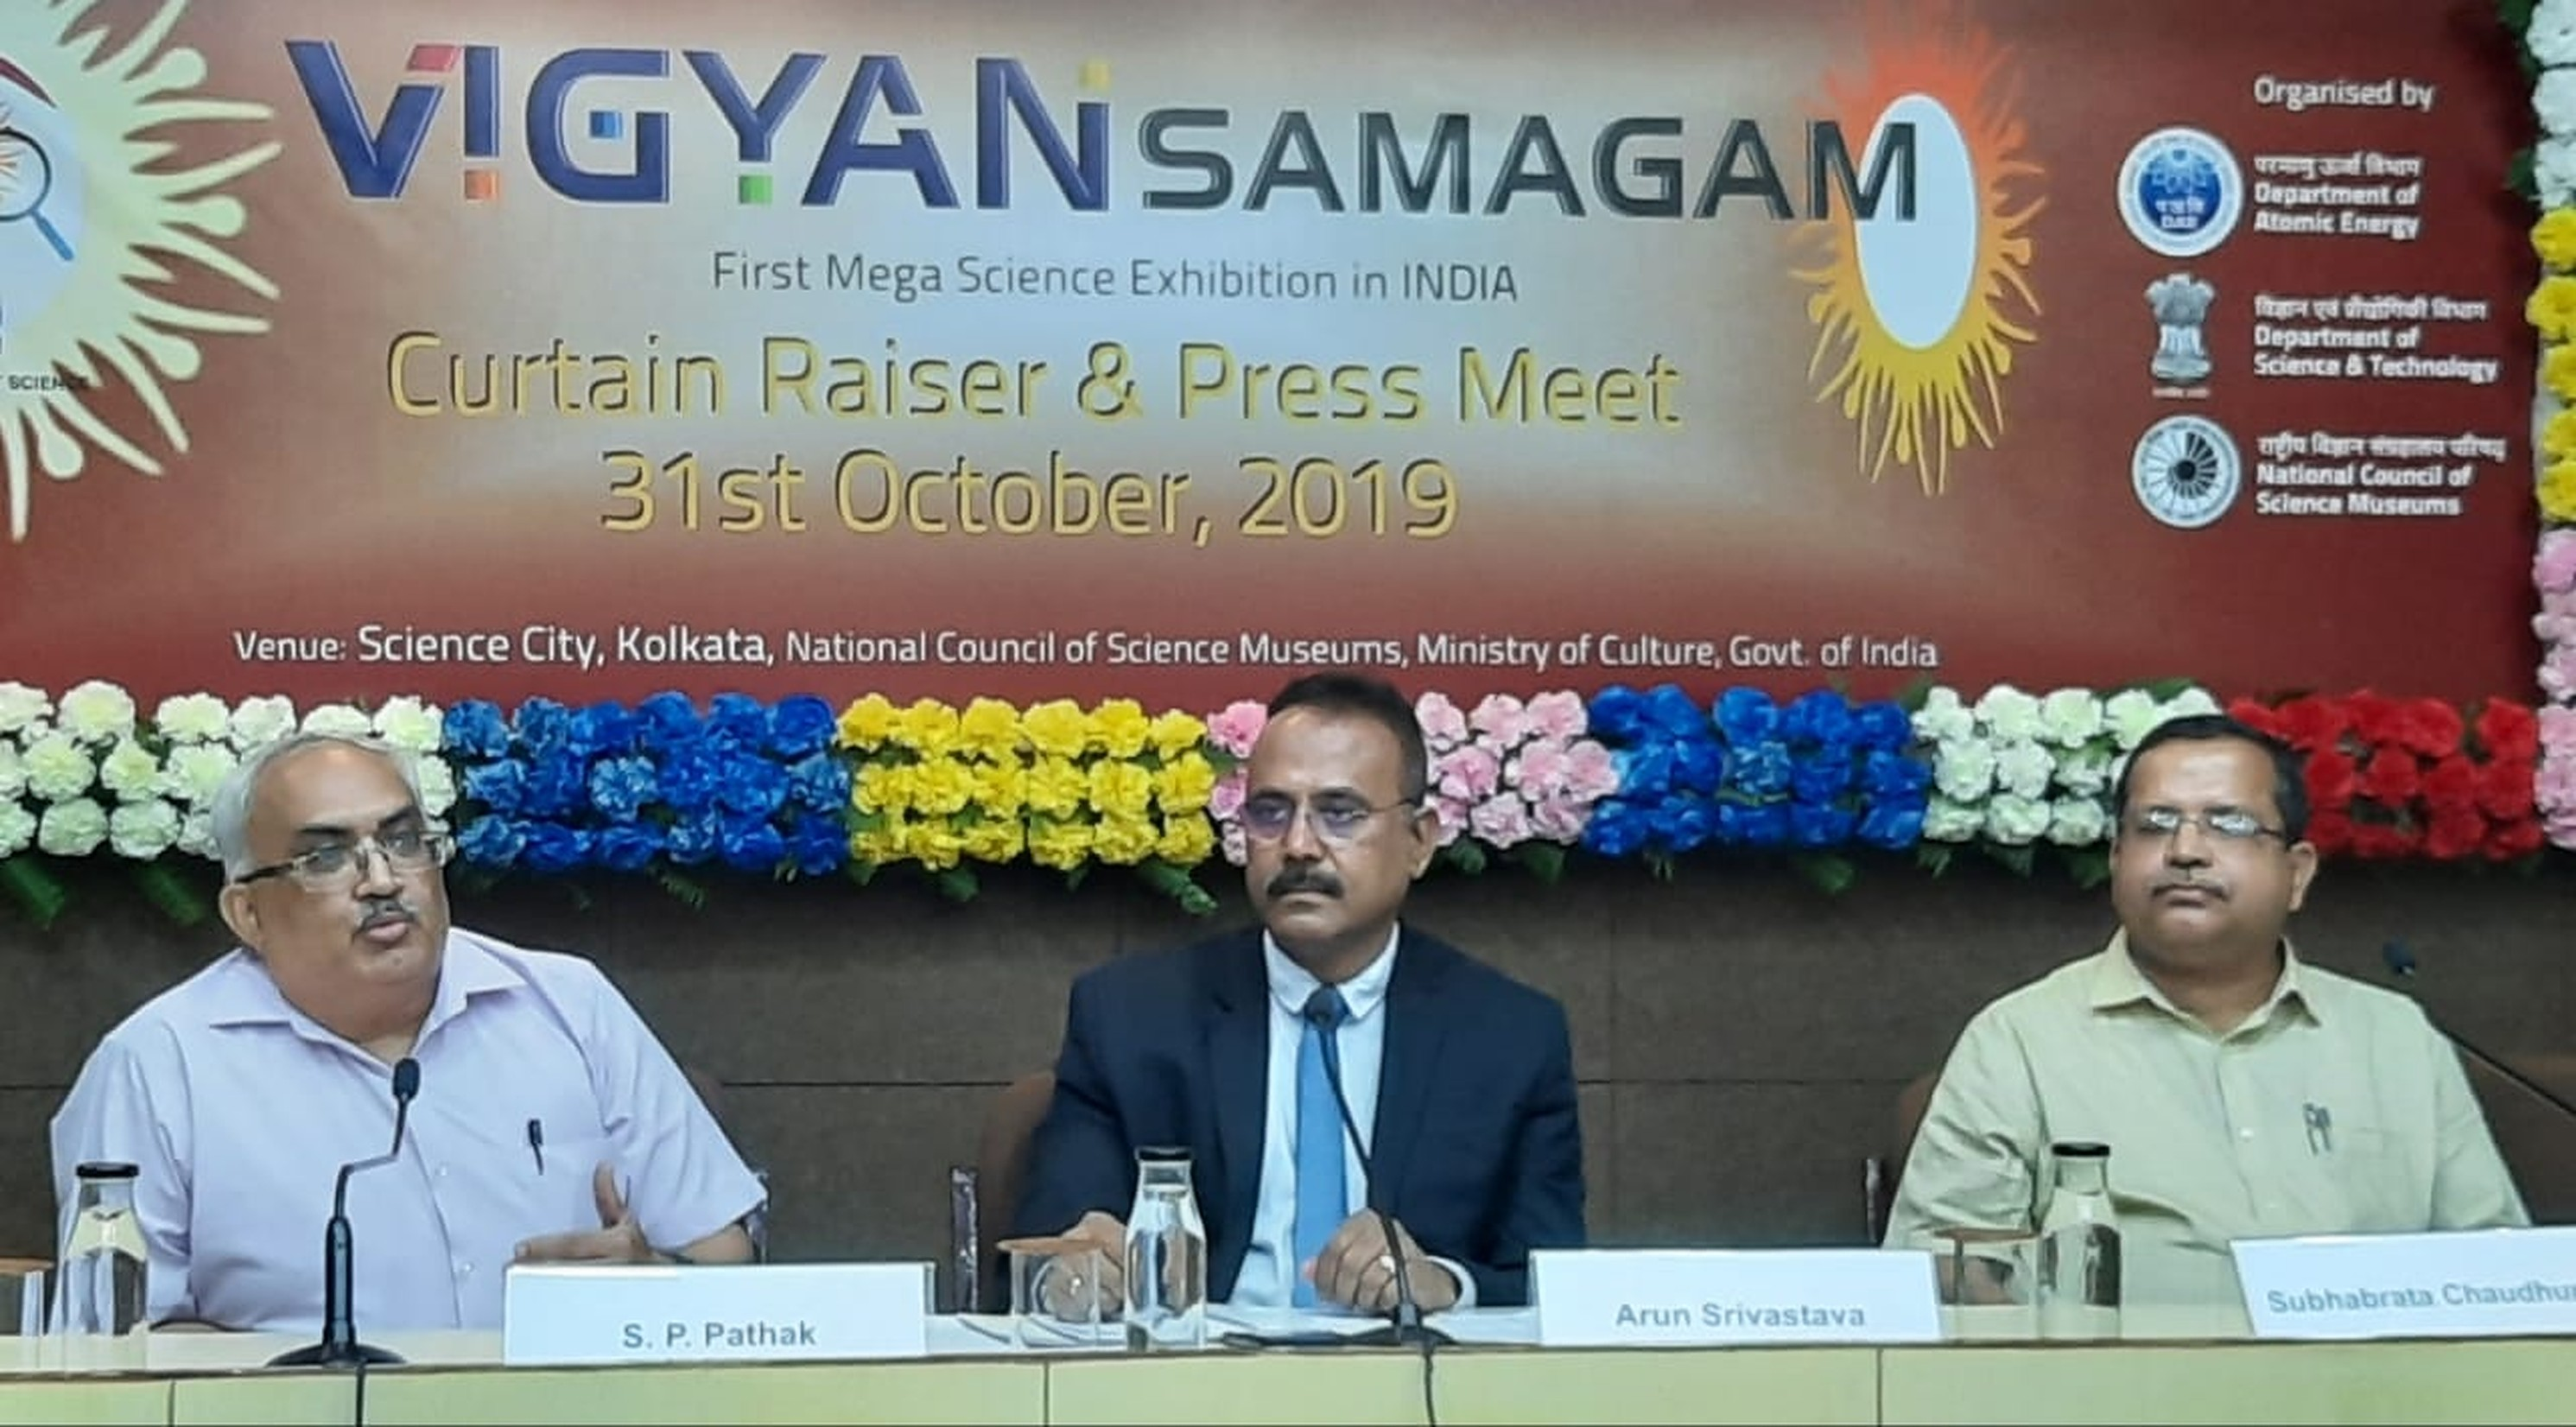 India's first Multi-Venue, Mega-Science Exhibition 'Vigyan Samagam' to begin on November 04th in Kolkata